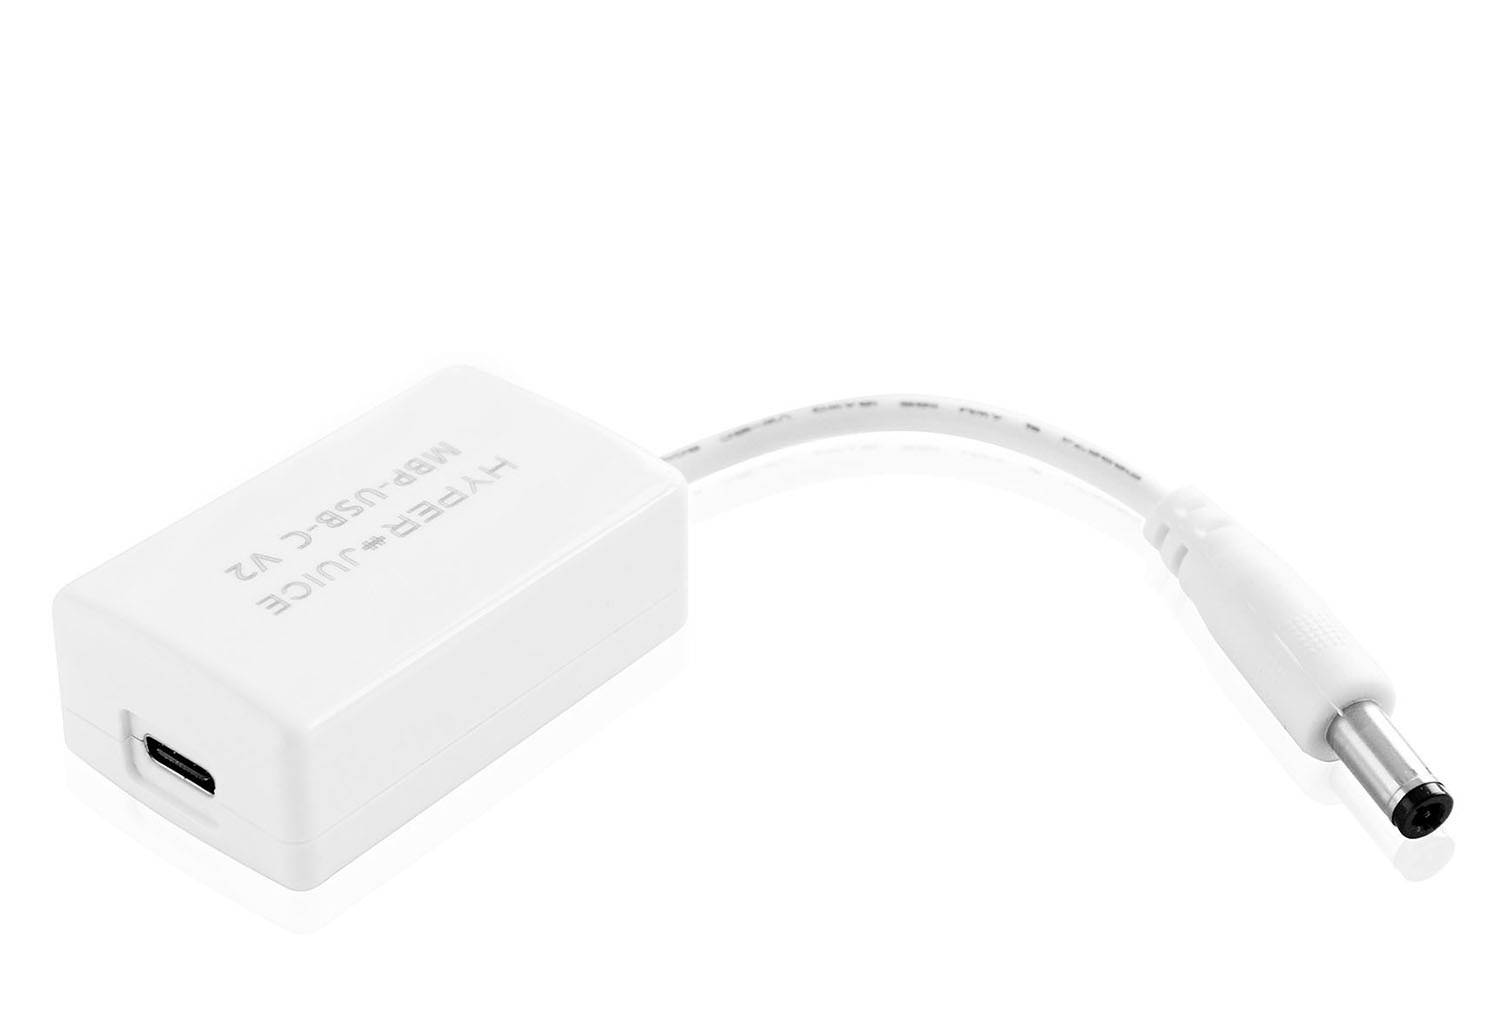 hyperjuice usb-c magic box product photo on white